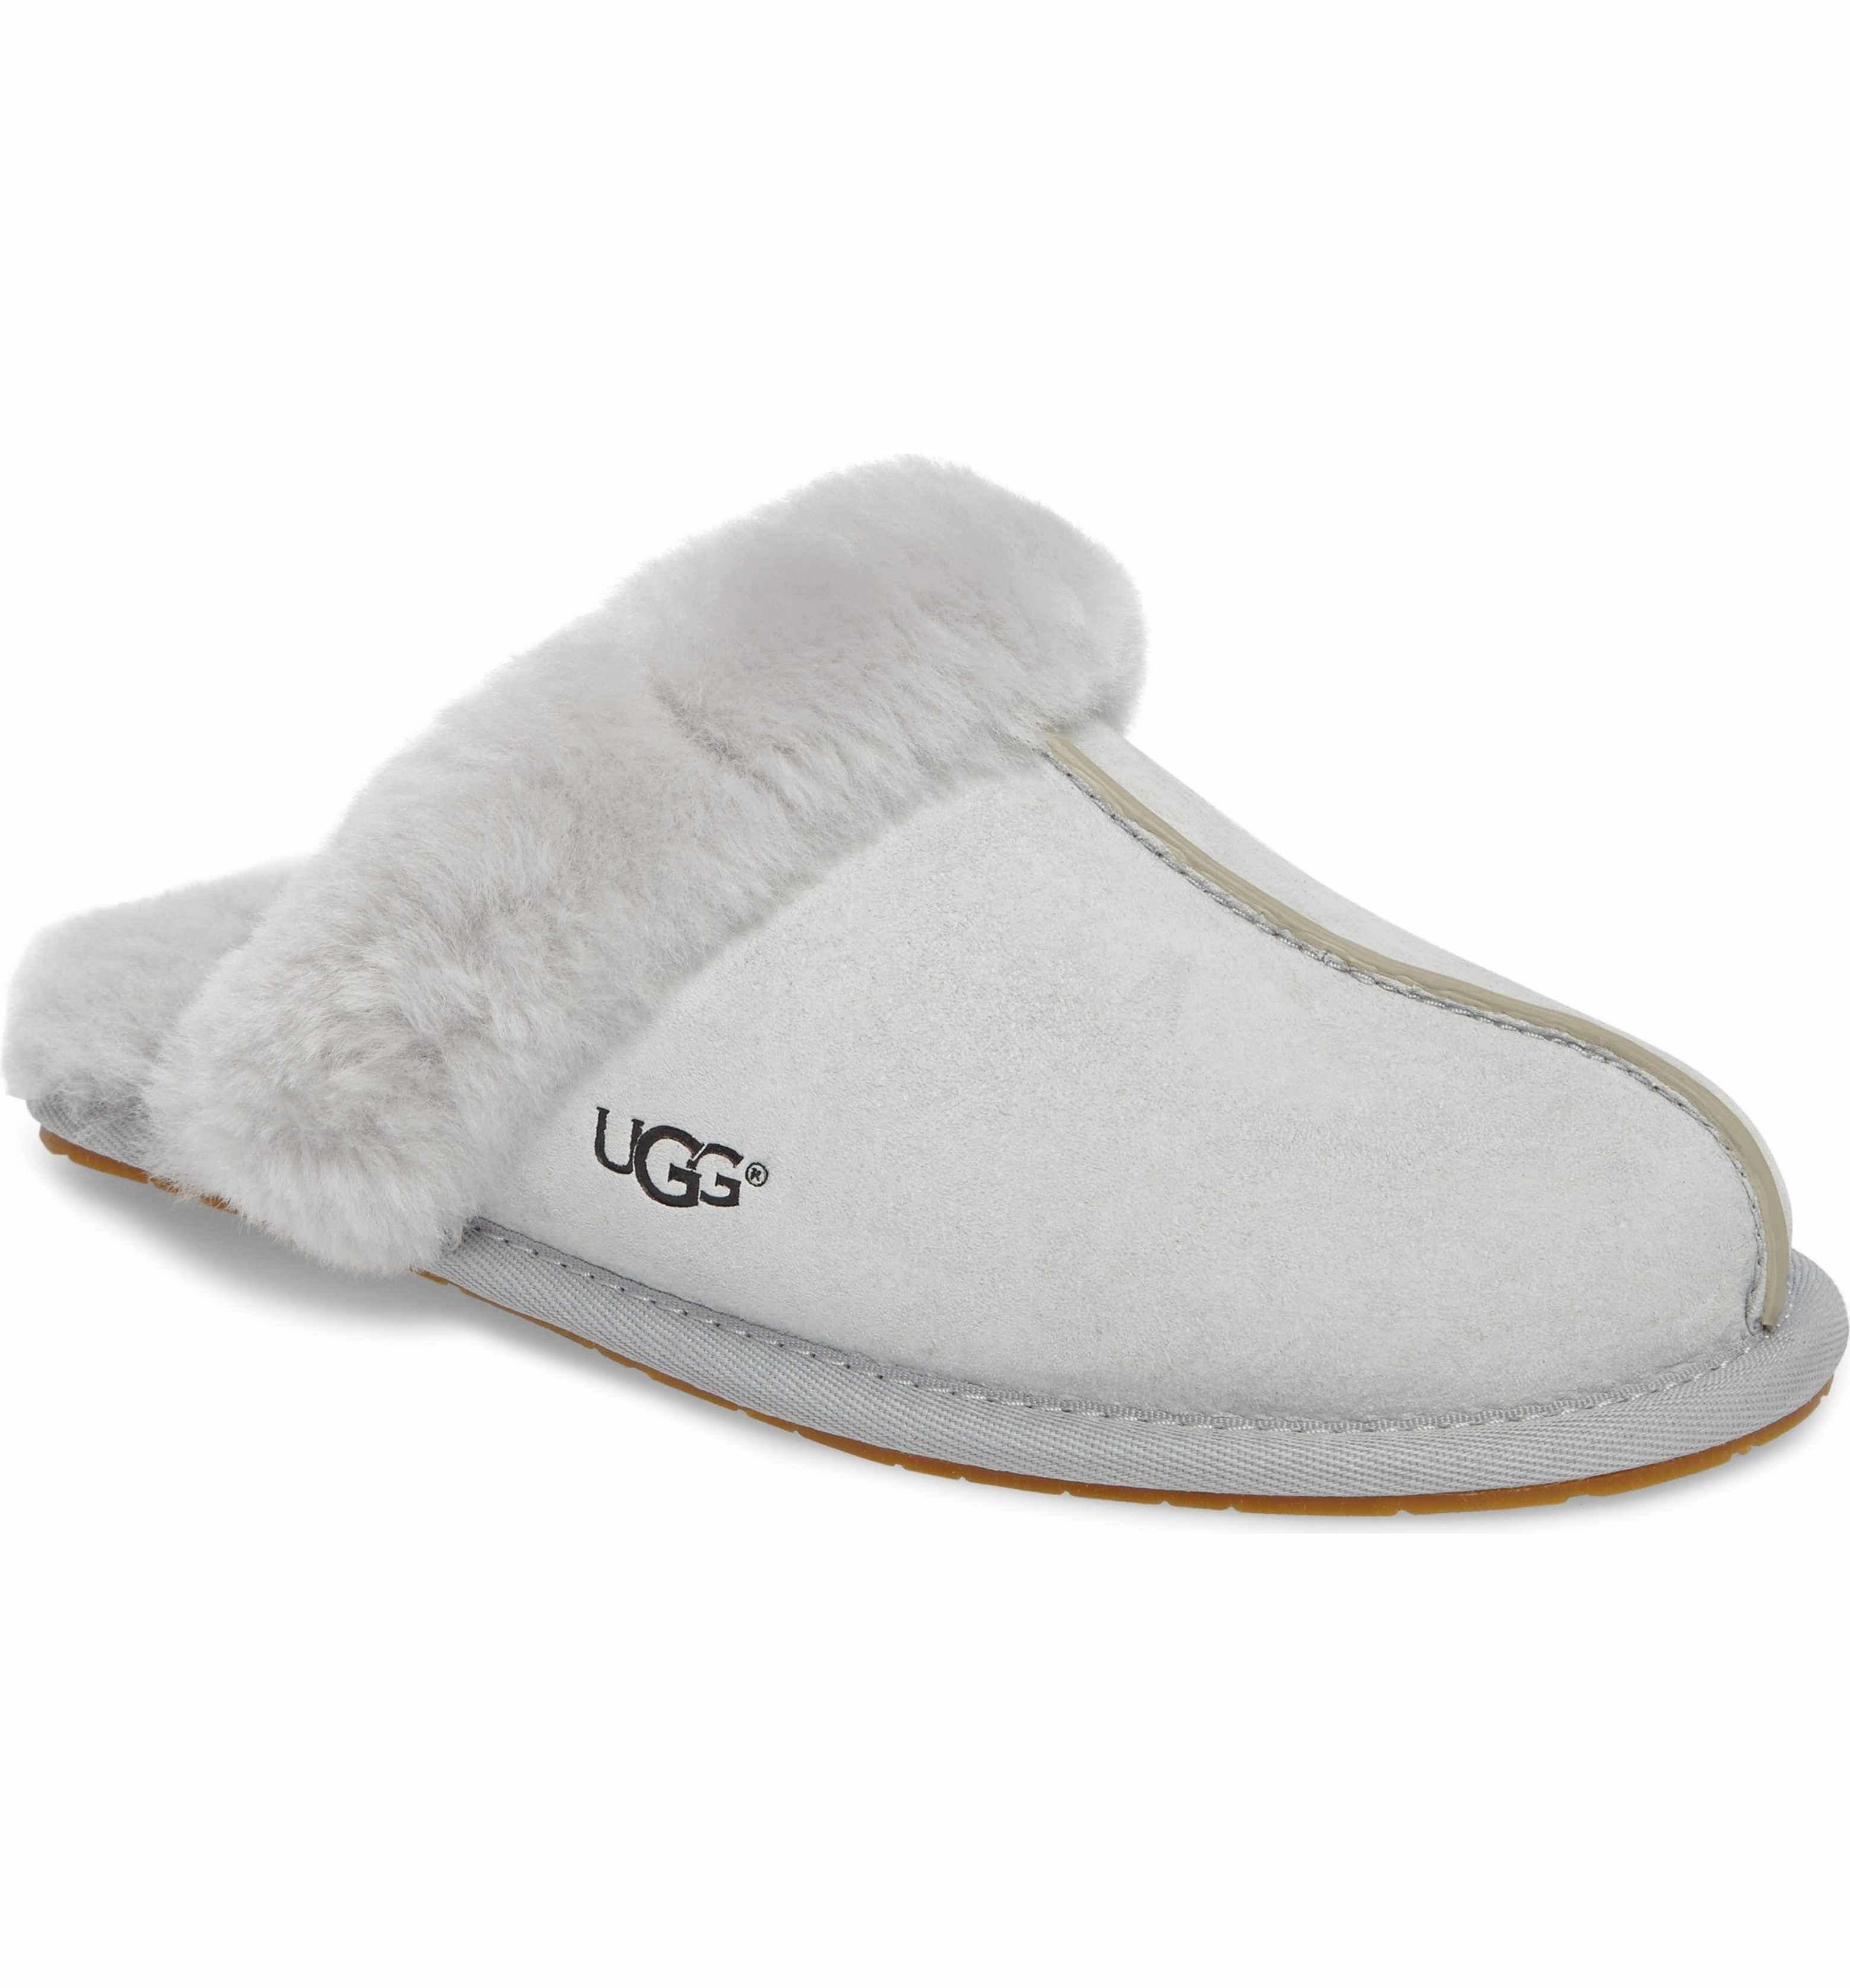 06dcd0c8da5 size 8 Main Image - UGG® Scuffette II Slipper (Women) | GIFS FOR ME ...